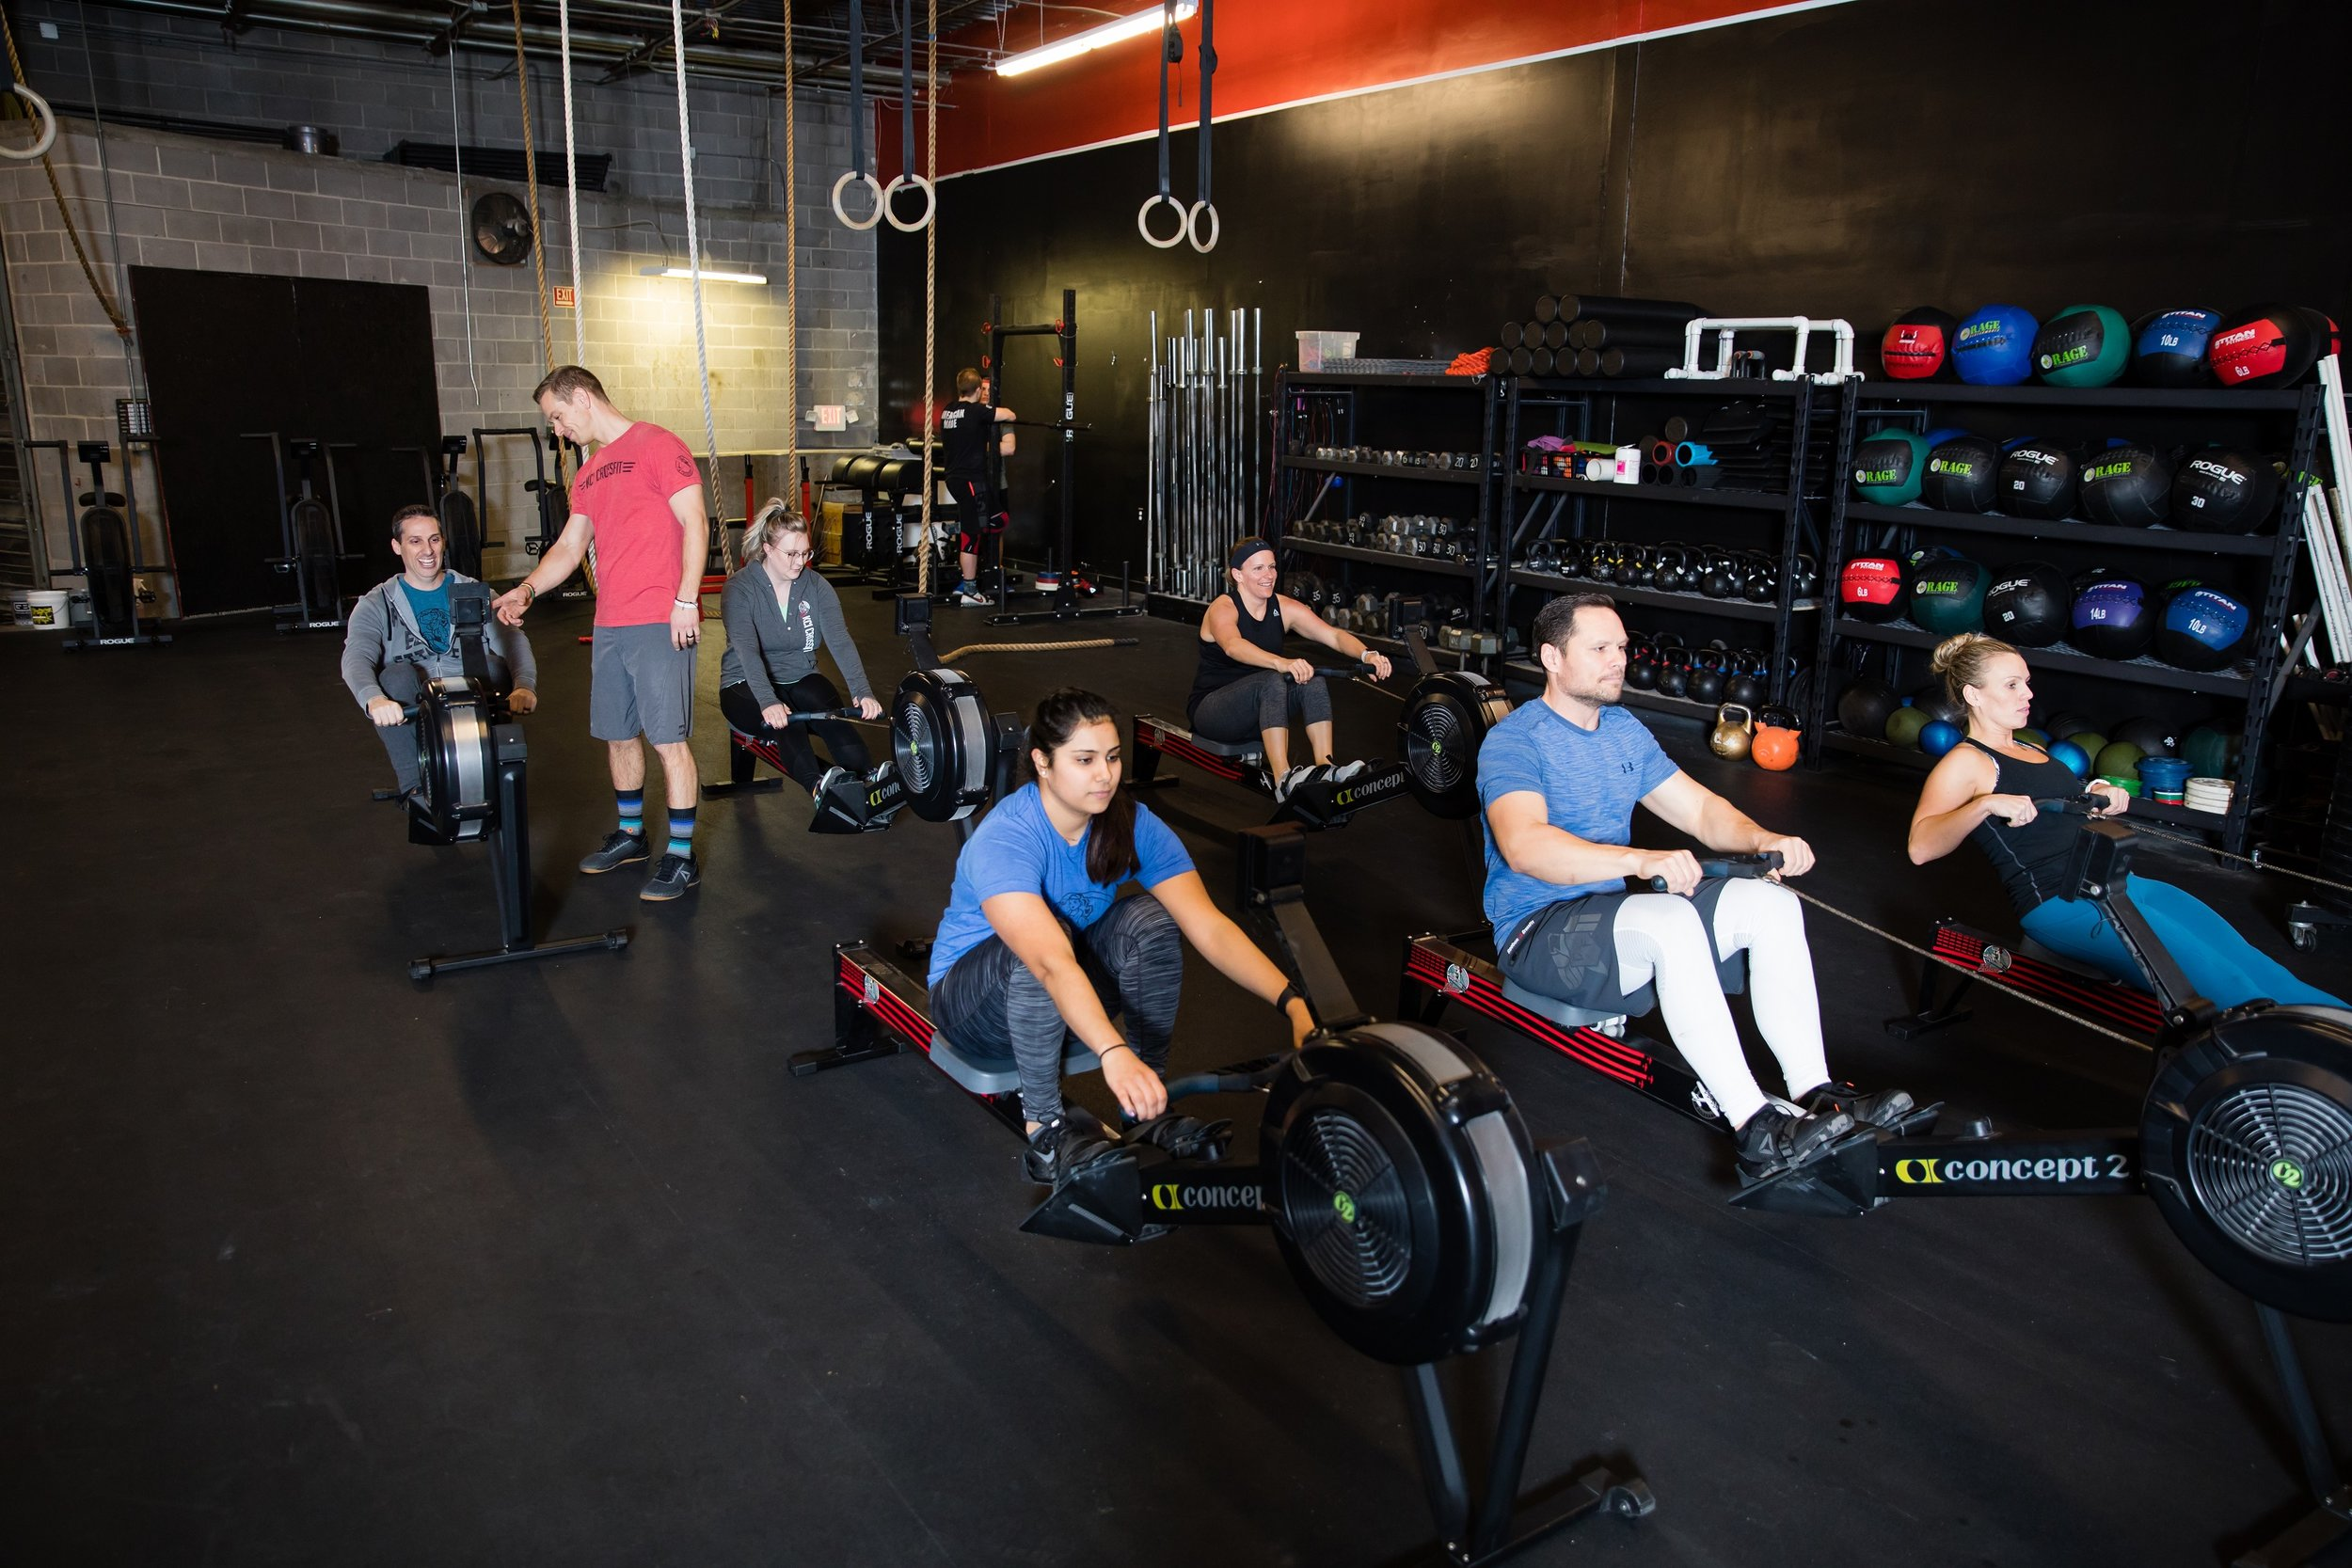 Our Mission: - To provide a positive and challenging environment that promotes health, fitness, and community; to ensure that standards for elite fitness are upheld through proper coaching, strong programming, and adherence to CrossFit standards; to strive for excellence at all times, as coaches, athletes and a community.Our values are simple: Gratitude & Grit.